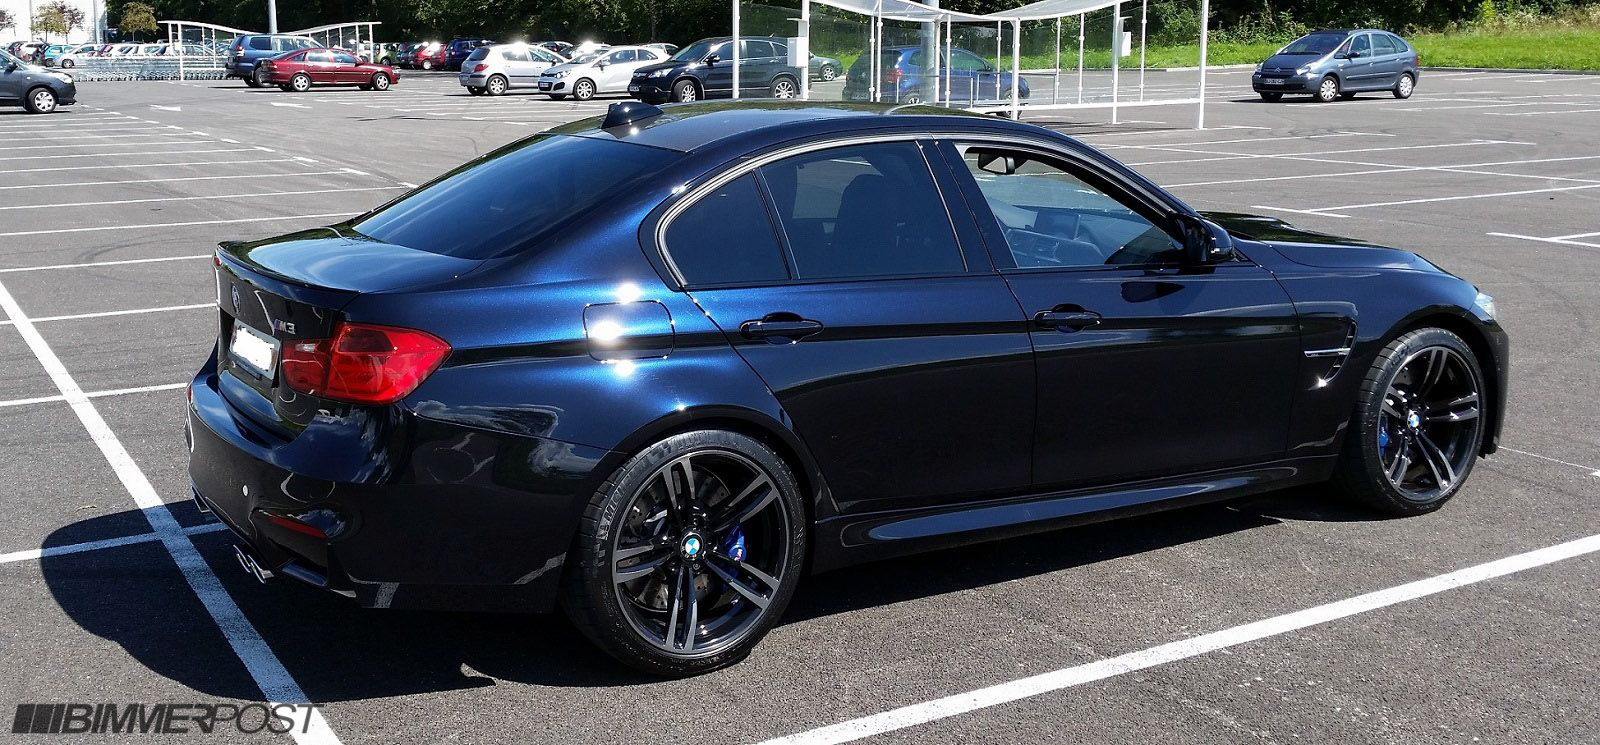 Individual F80 M3 Azurite Black Sakhir Orange Voiture